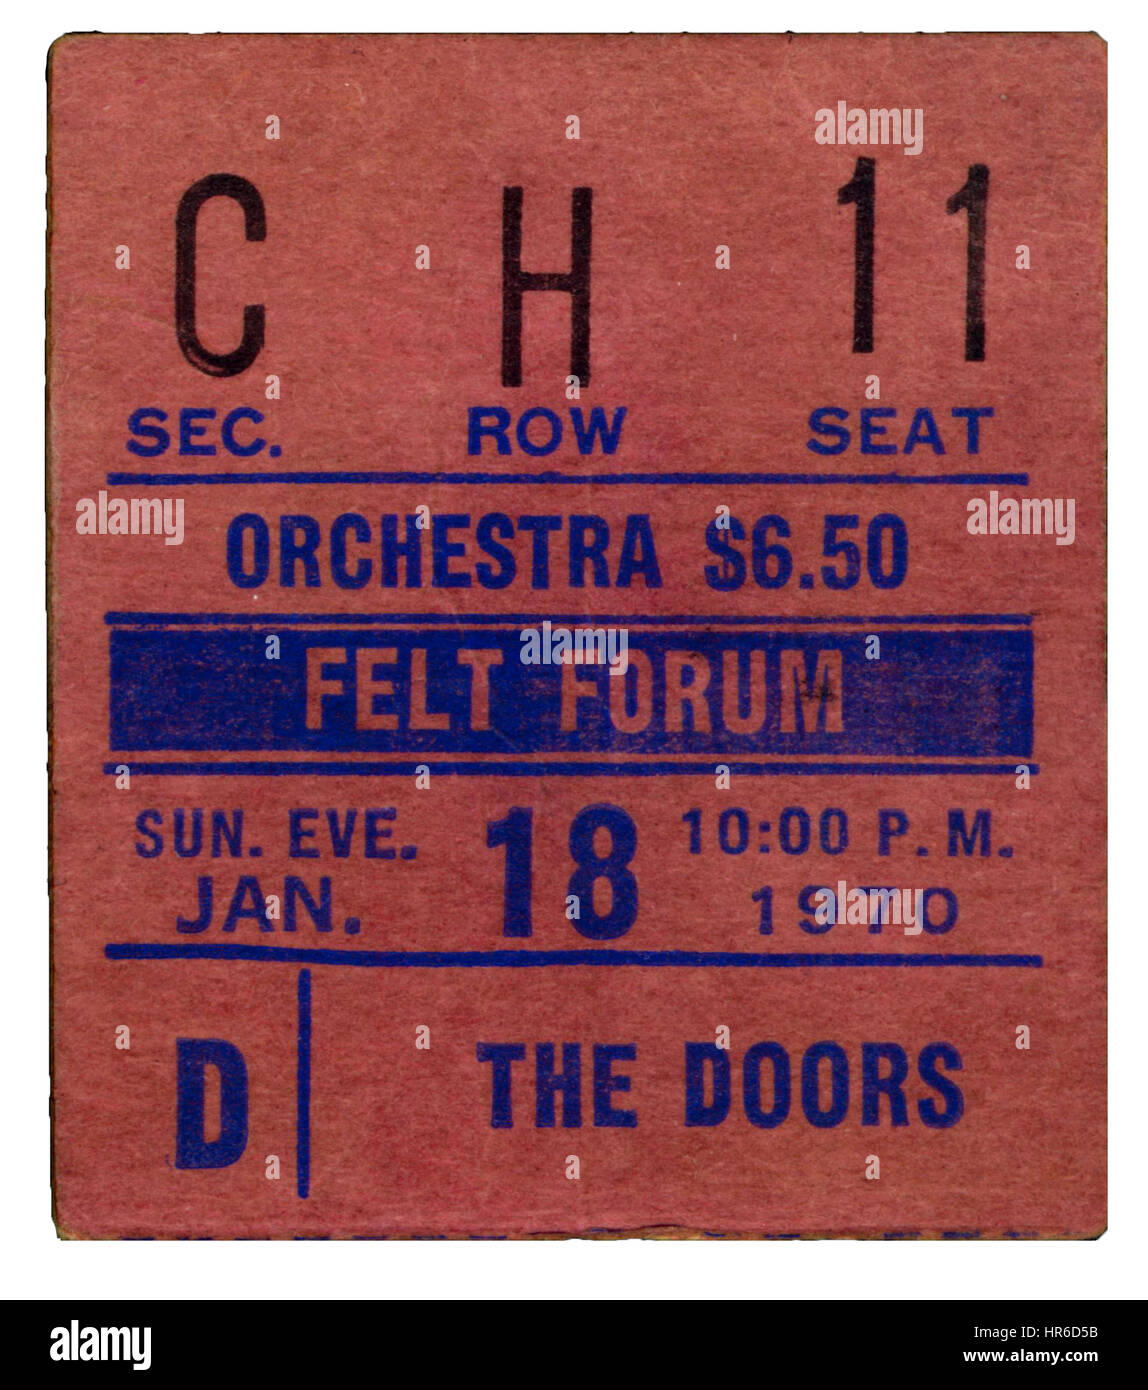 Ticket Stub of The Doors performing at Felt Forum in New York City on January 18th, 1970 - Stock Image